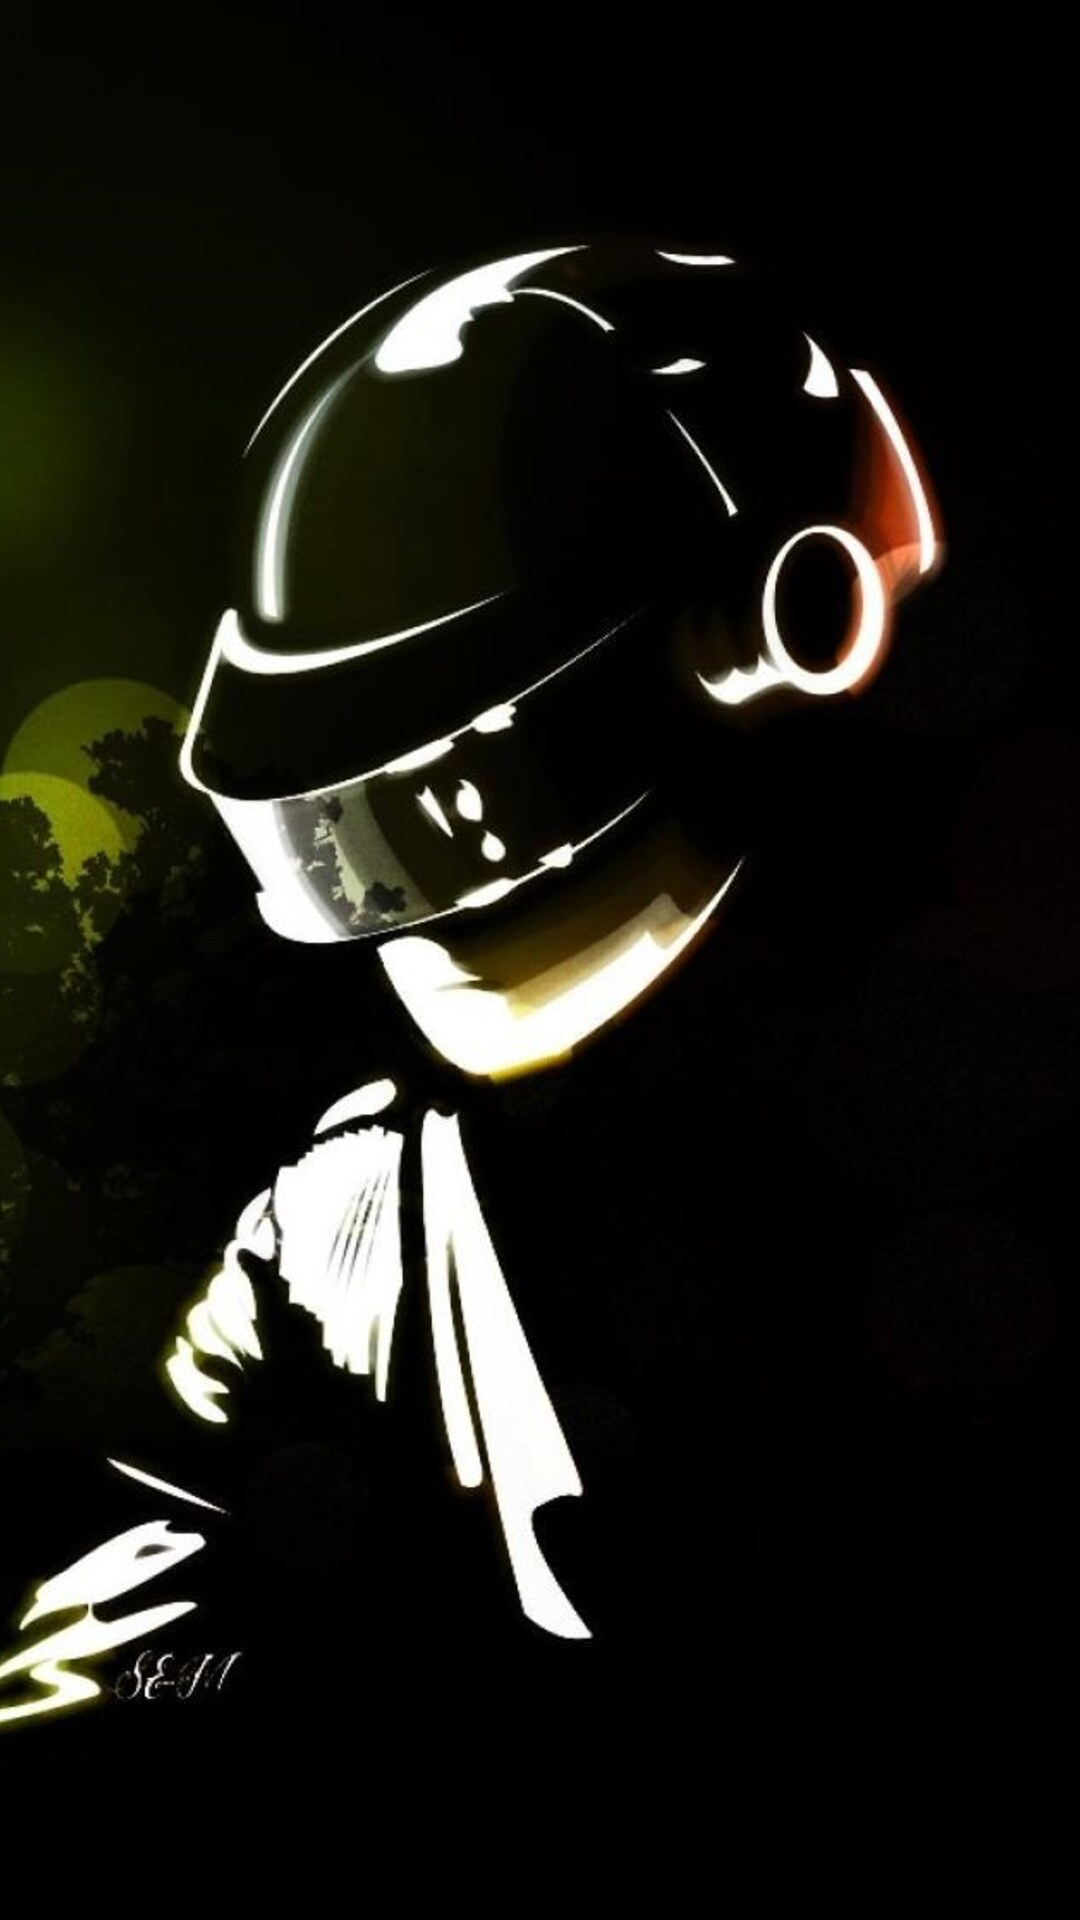 One More Time Daft Punk Qhd